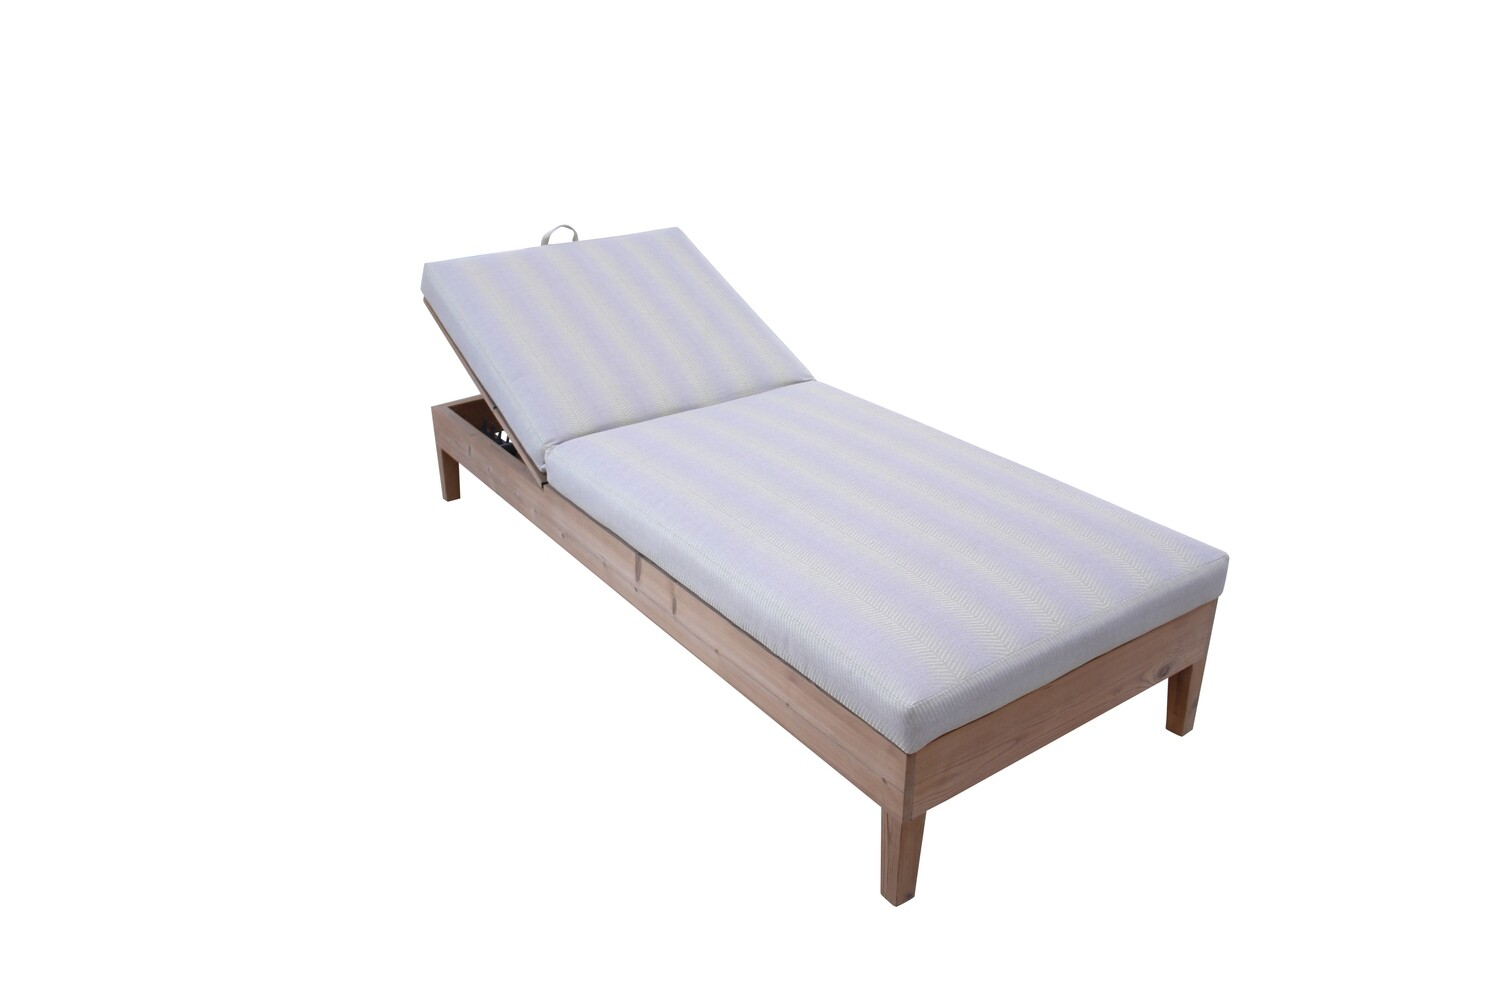 Wood Base Lounger